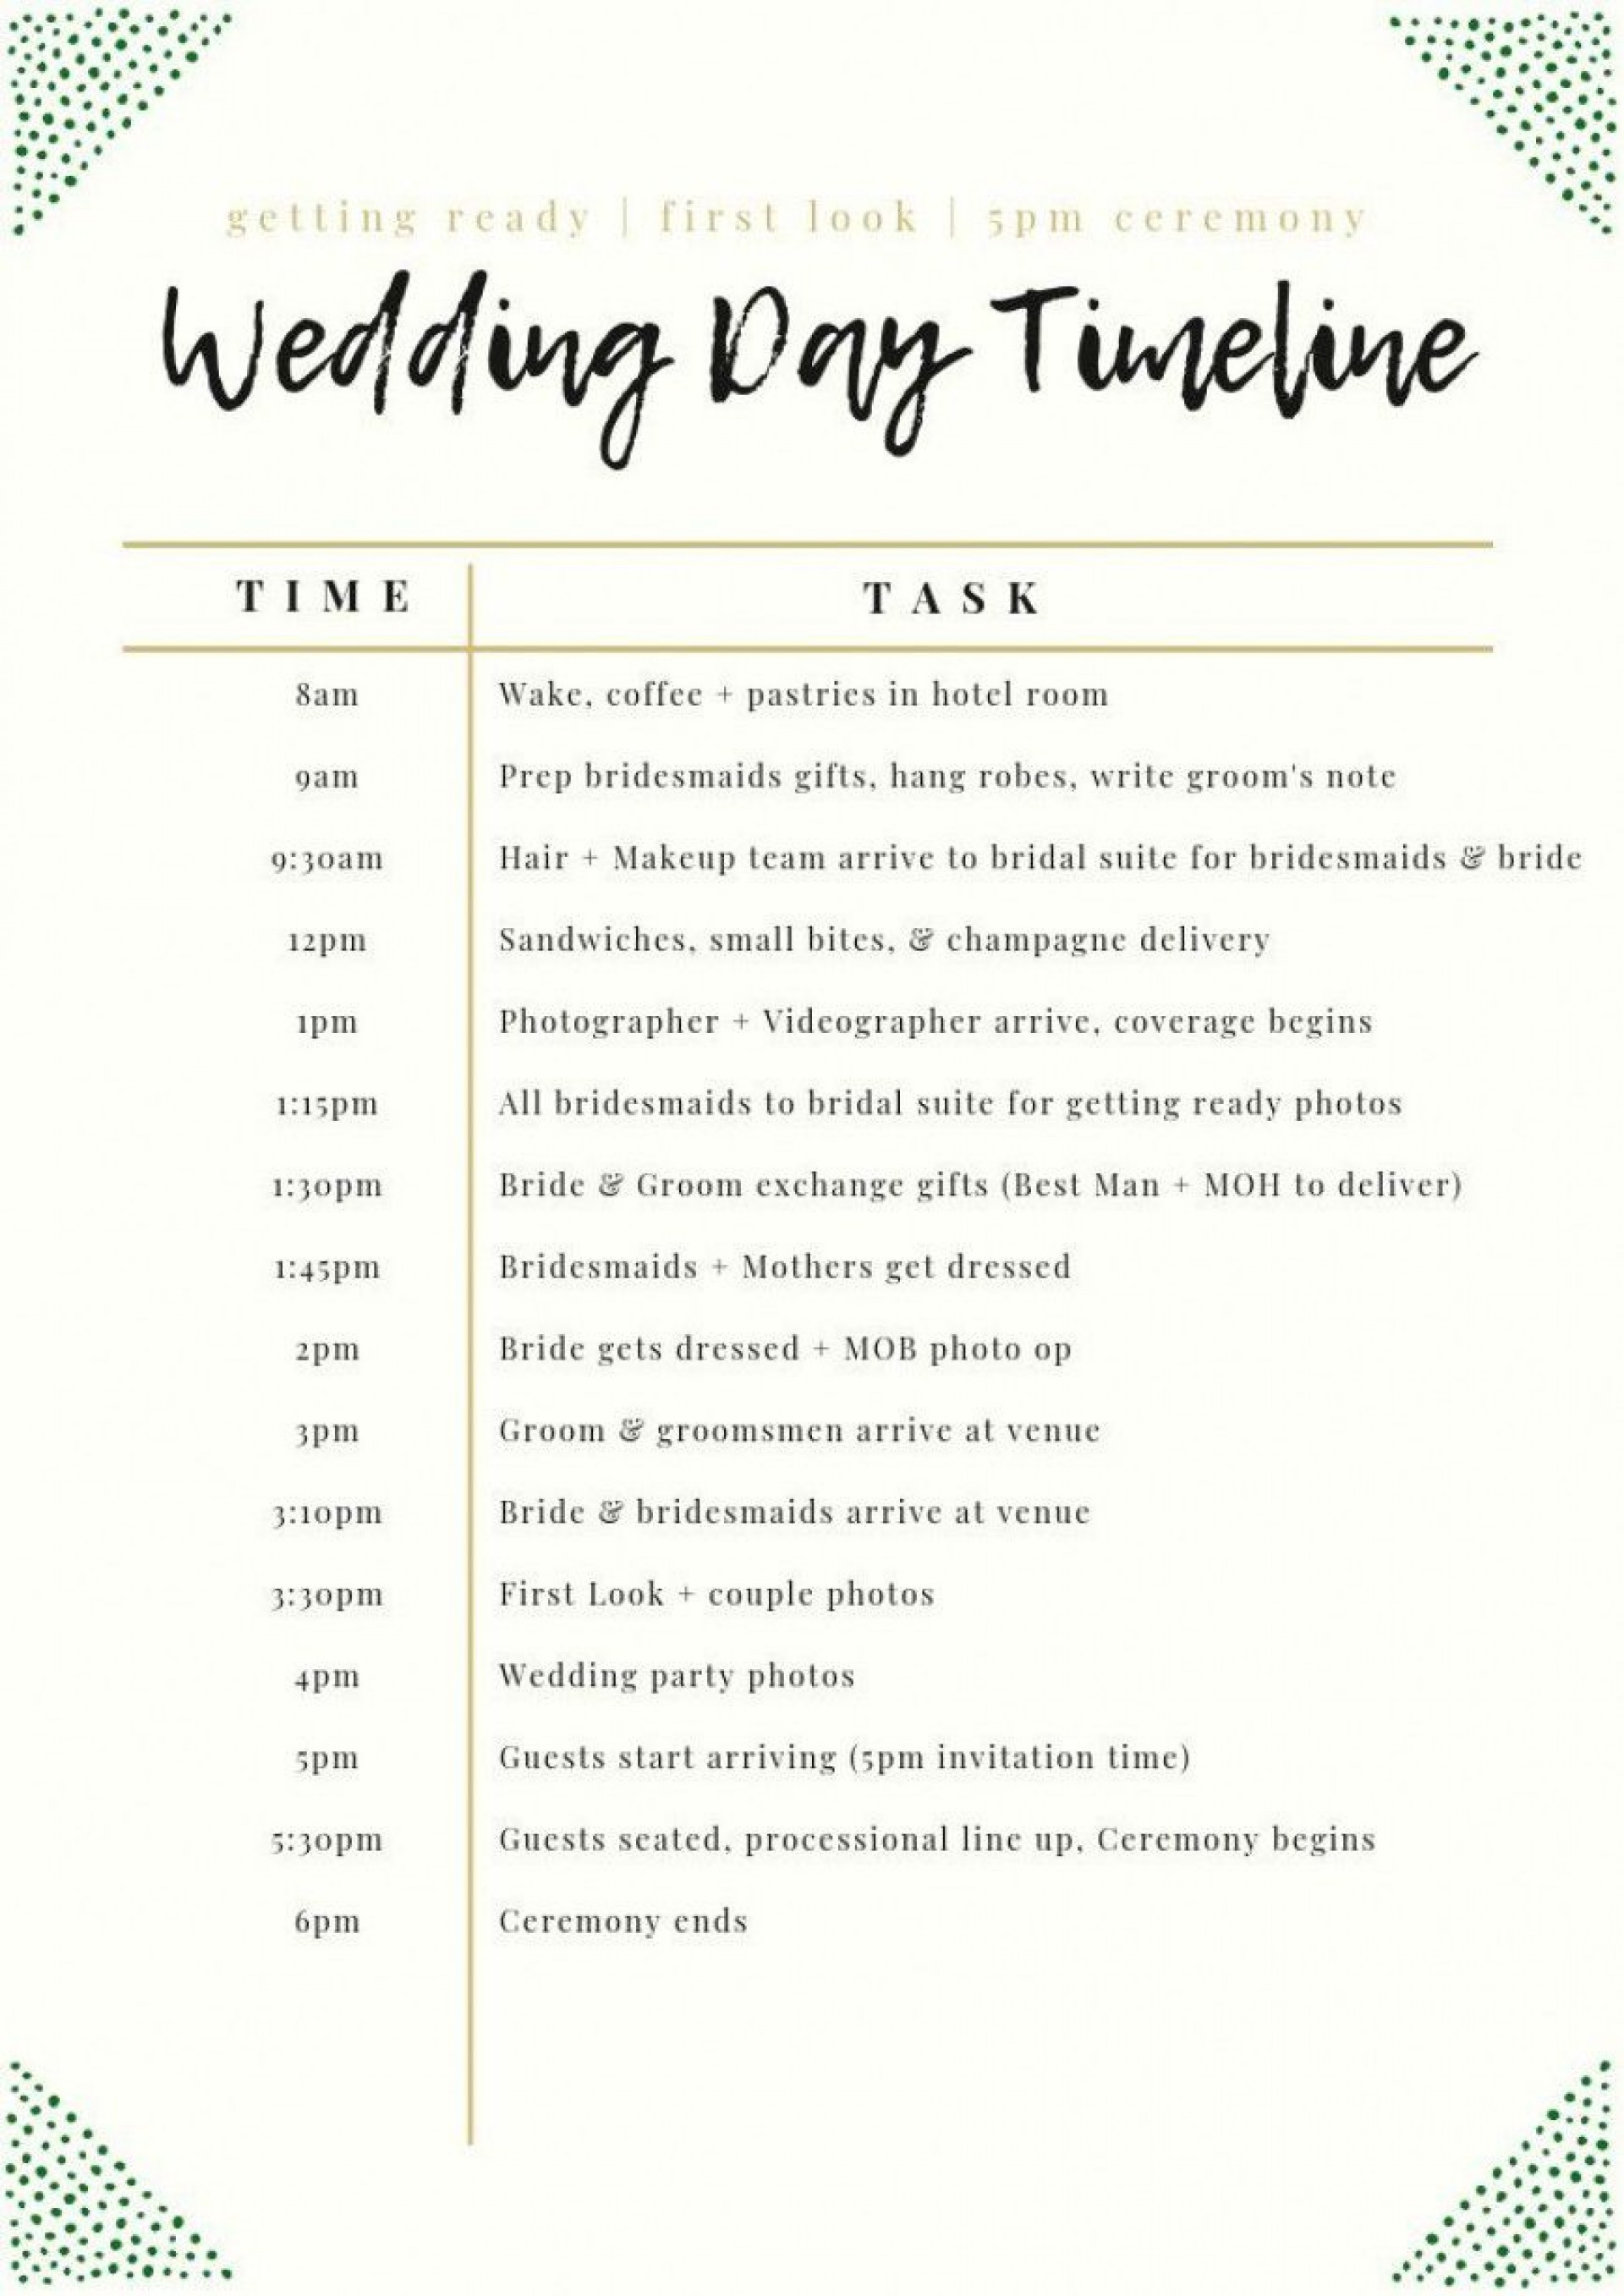 003 Unforgettable Wedding Day Schedule Template High Definition  Excel Editable Timeline Free Word1920